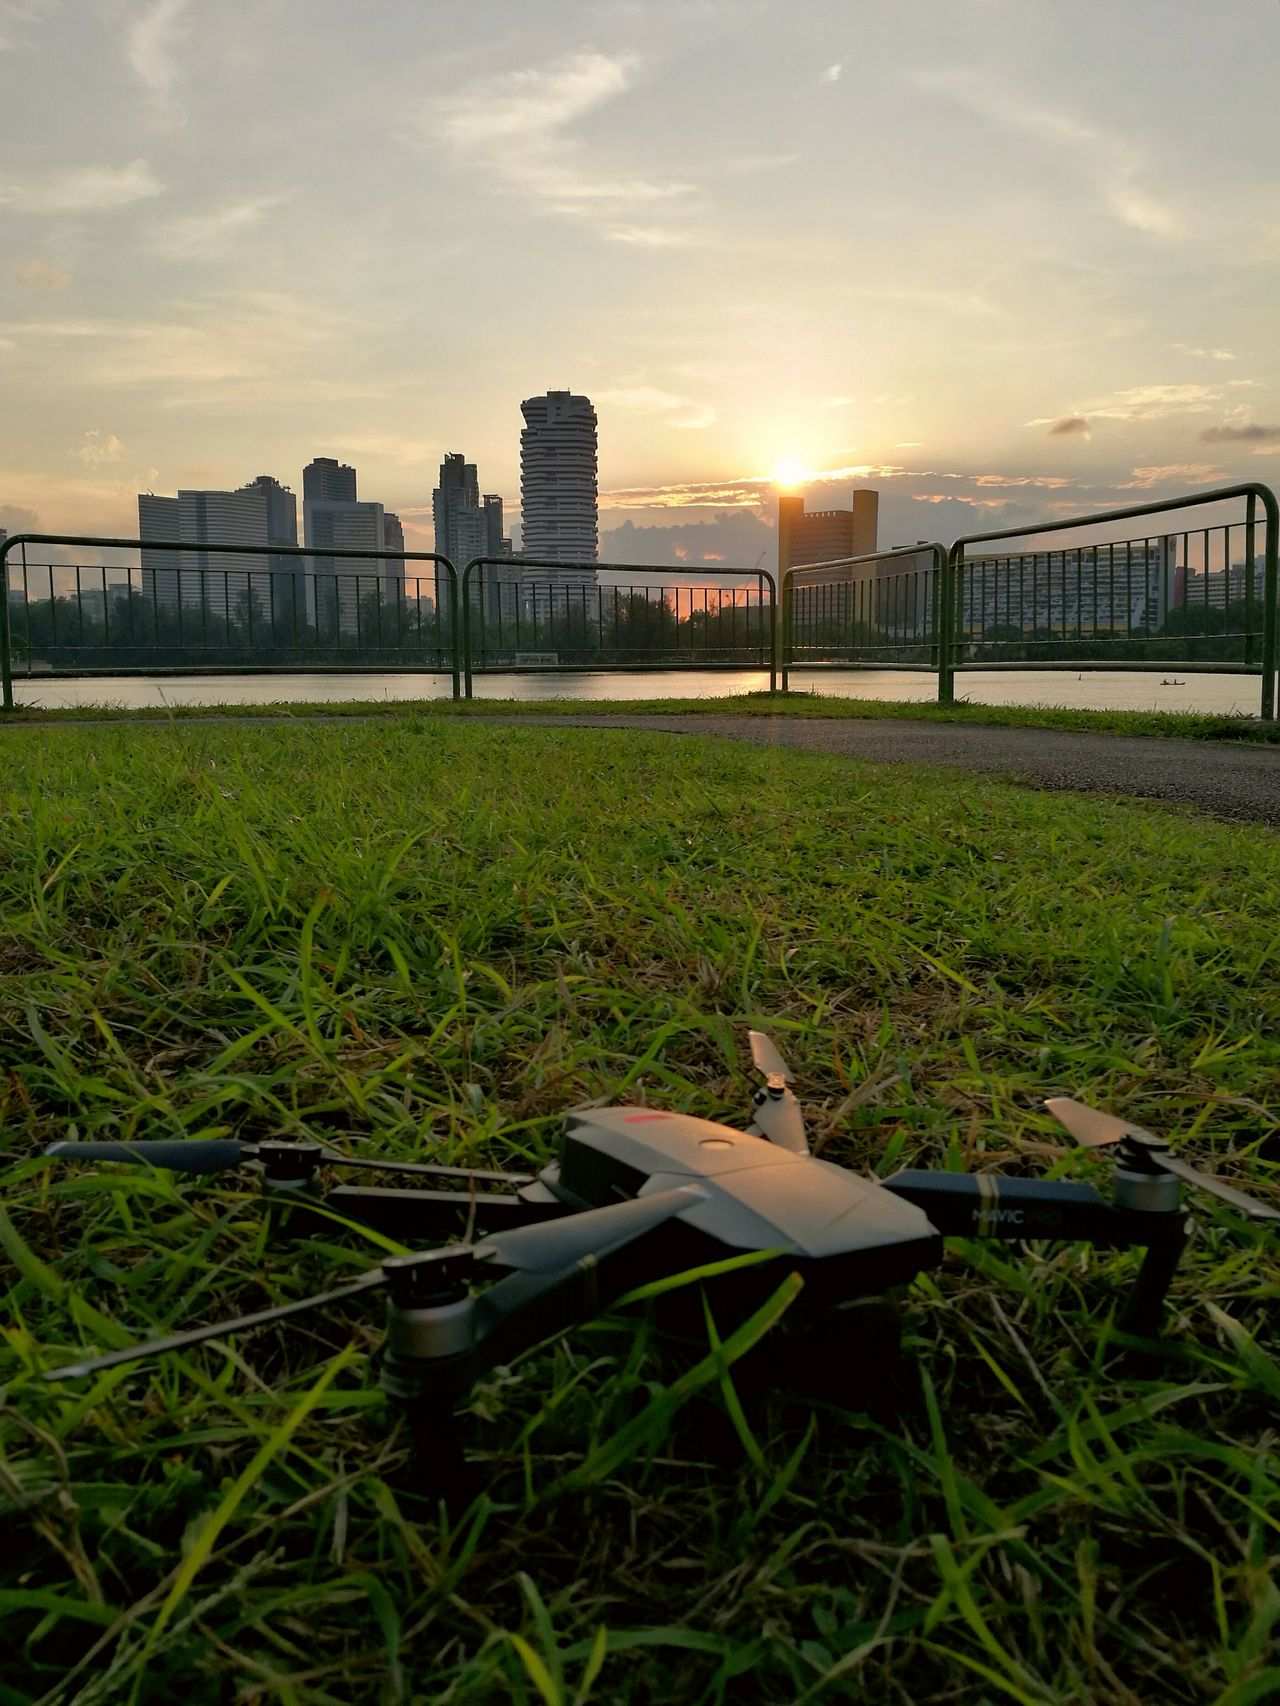 Grass Sunset Outdoors Sky No People City Building Exterior Architecture Day Cityscape Drone  Djimavicpro Waterfront Water Urban Skyline Skyline Reflection